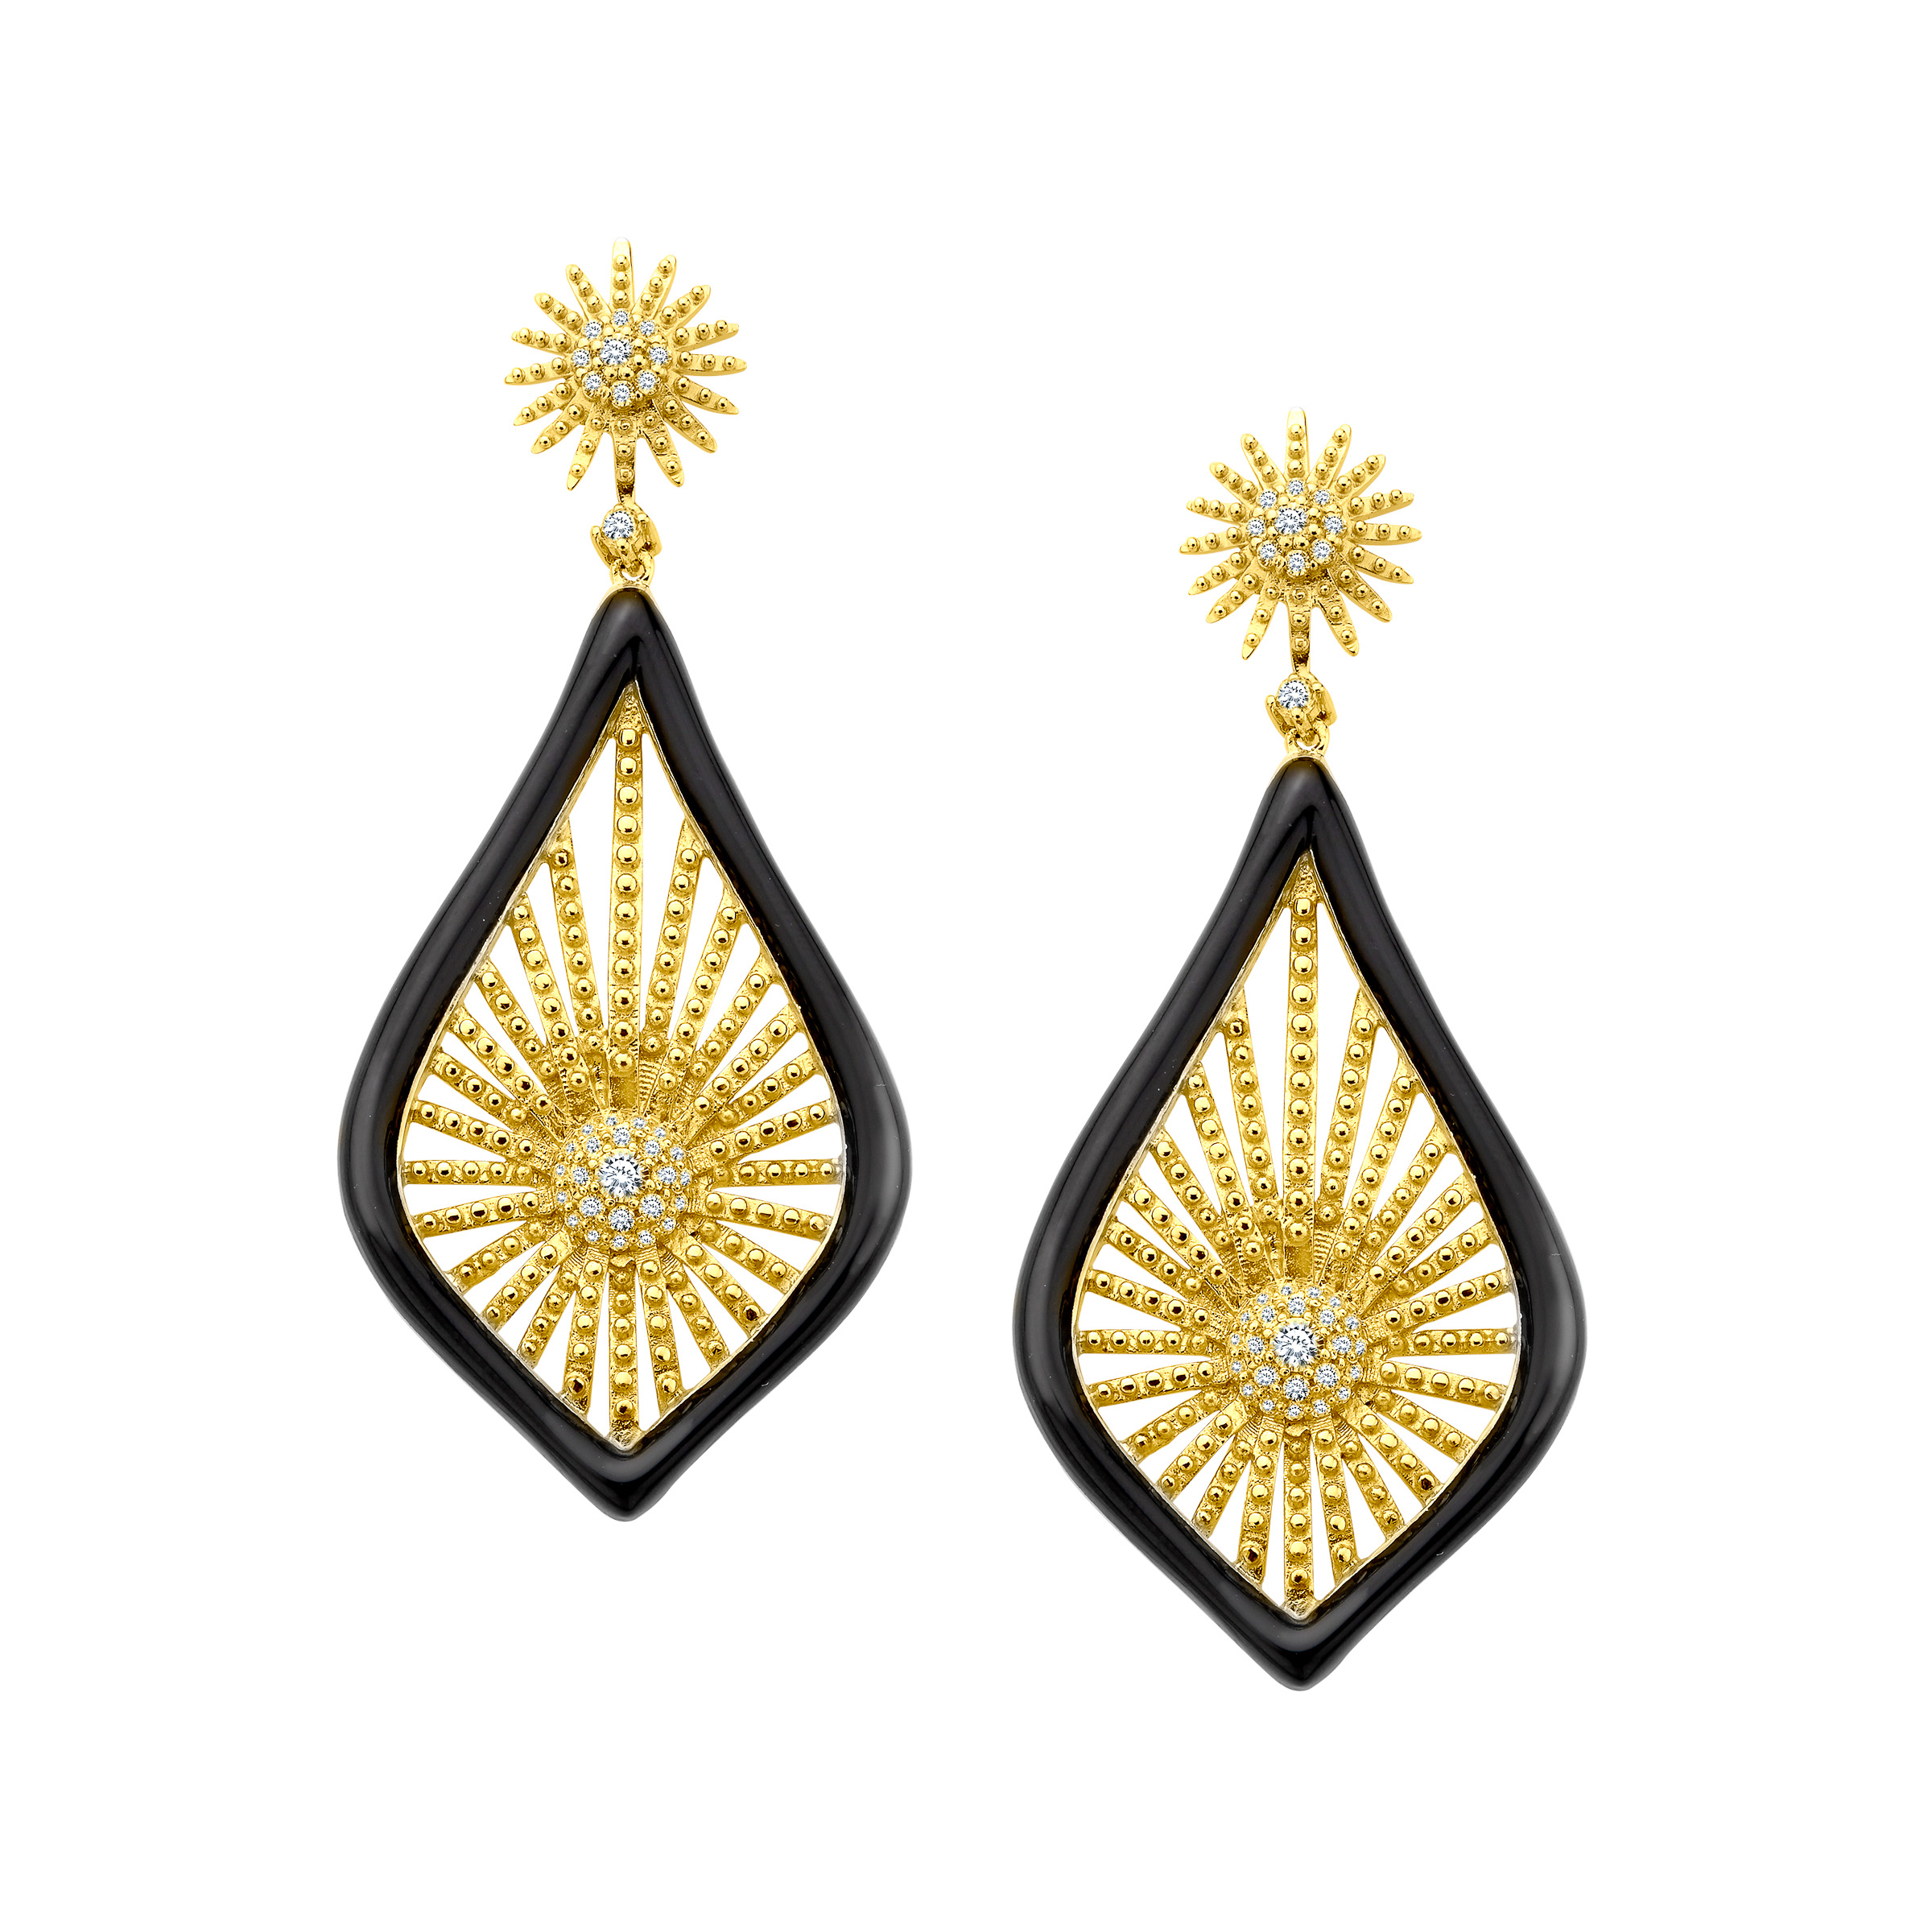 Cristina Sabatini Morning Star Drop Earrings with Cubic Zirconia in 14kt Gold over Sterling Silver